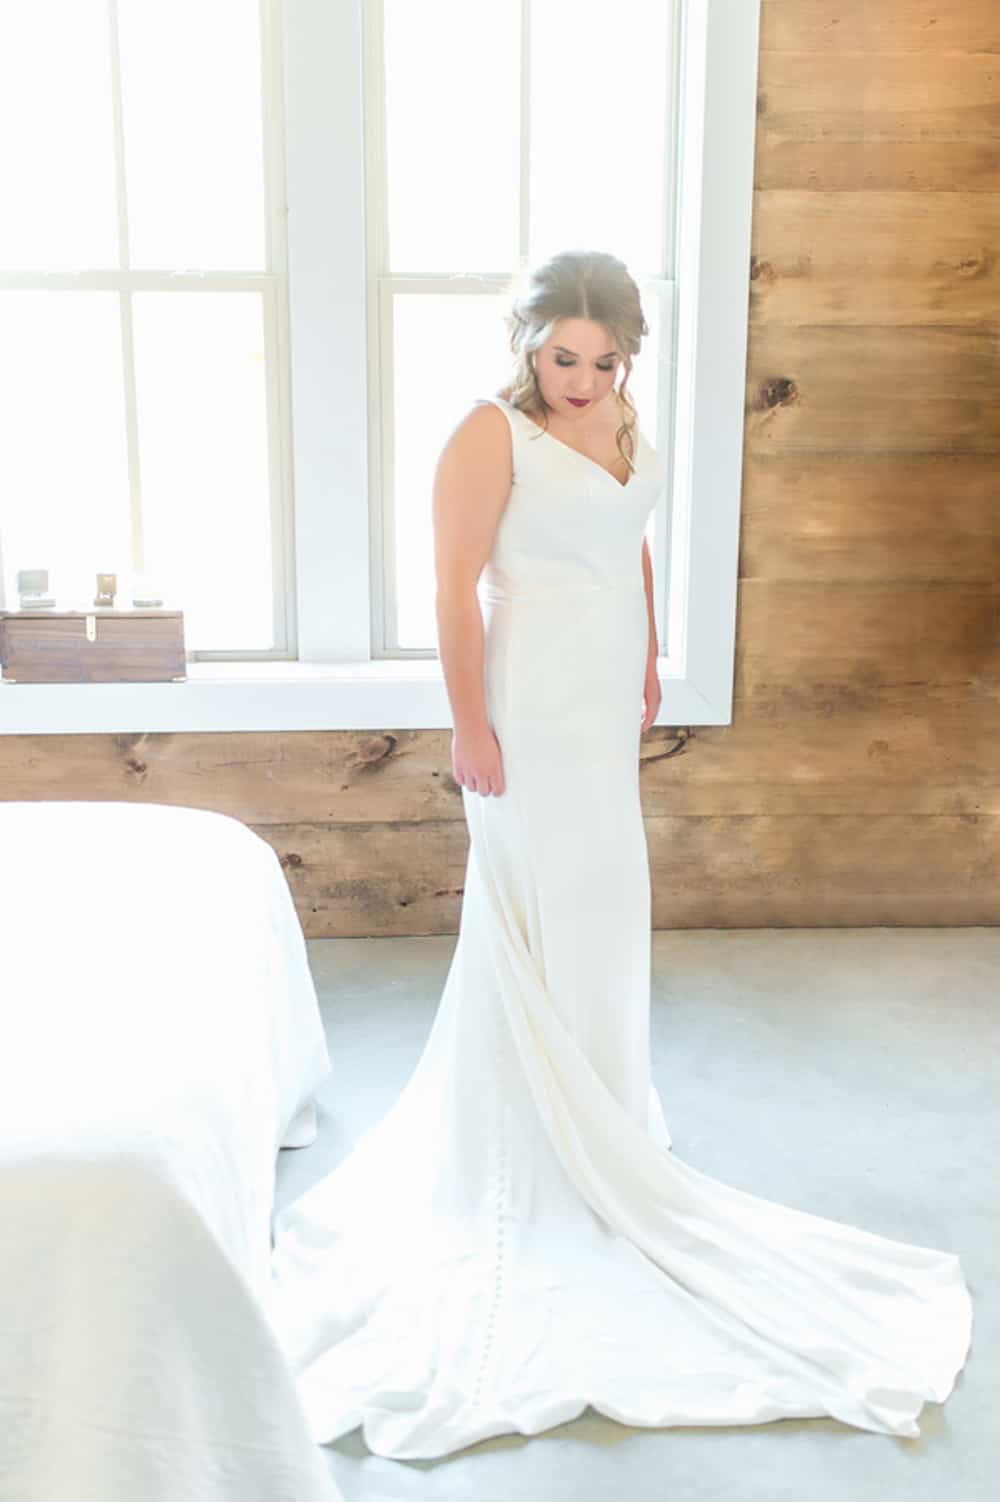 2b-boland_bissey_laurencoffeyphotography_lcpbisseyhighlights36_low